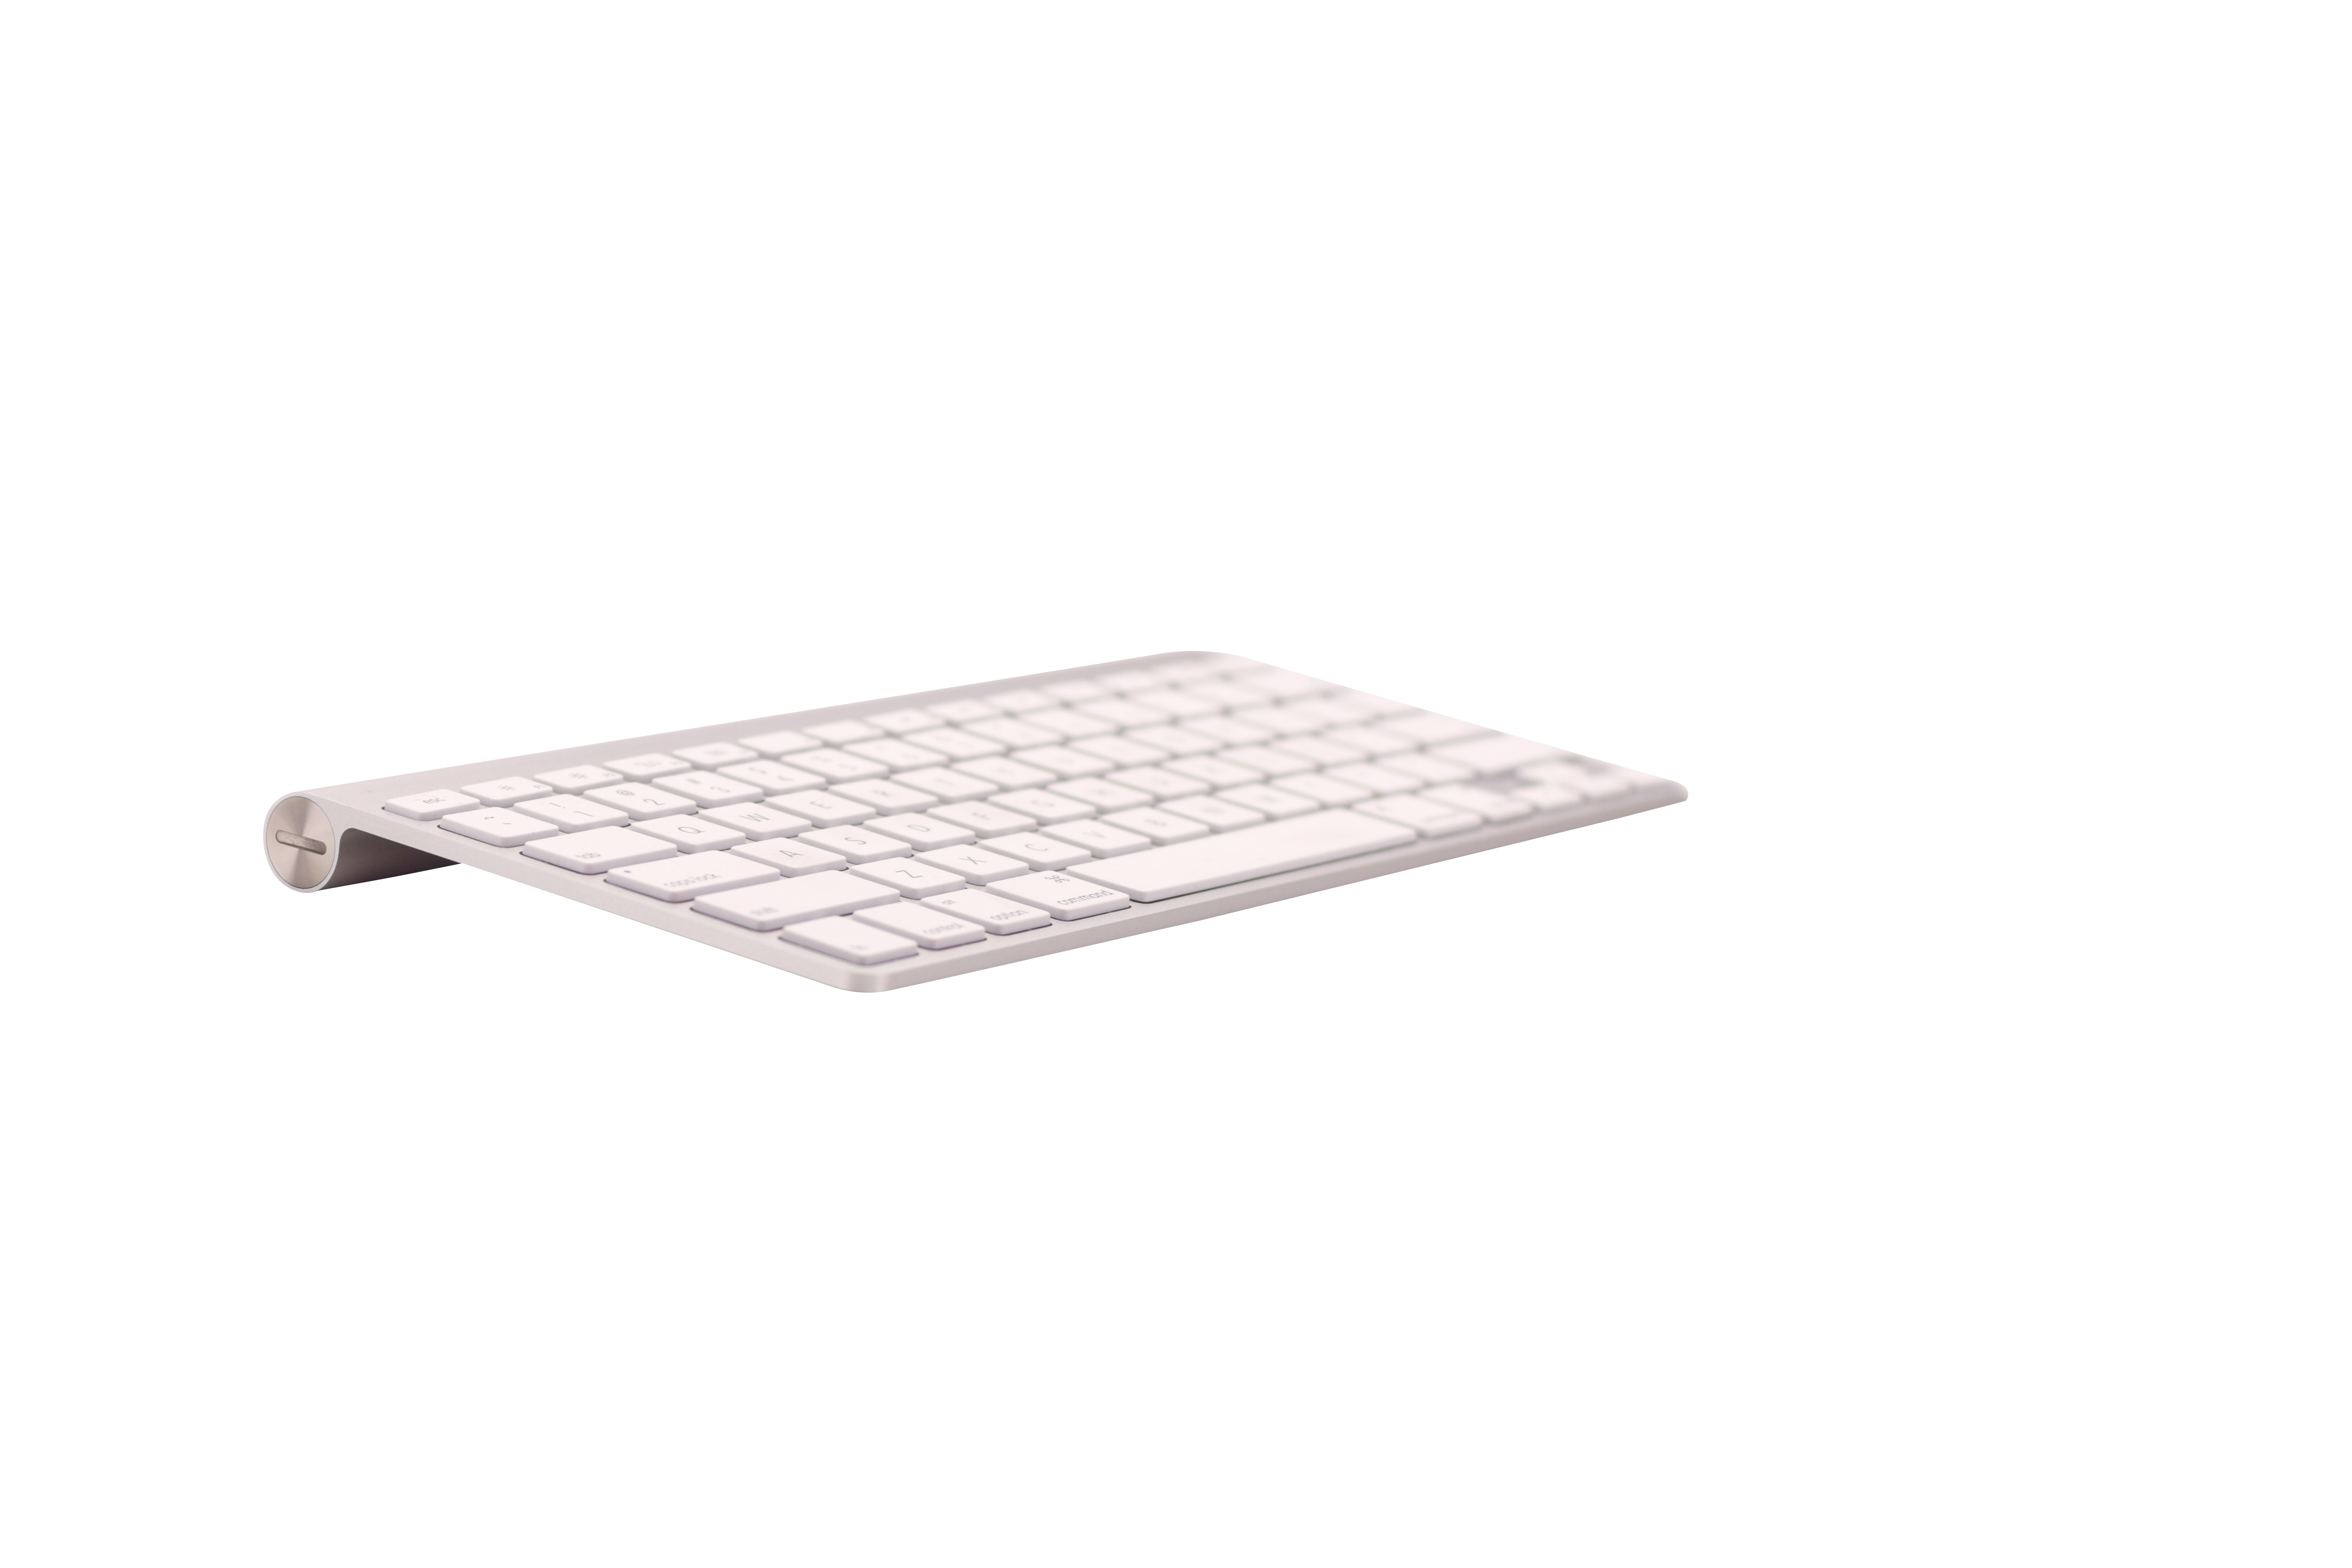 Apple Wireless Keyboard Transparent Background PNG